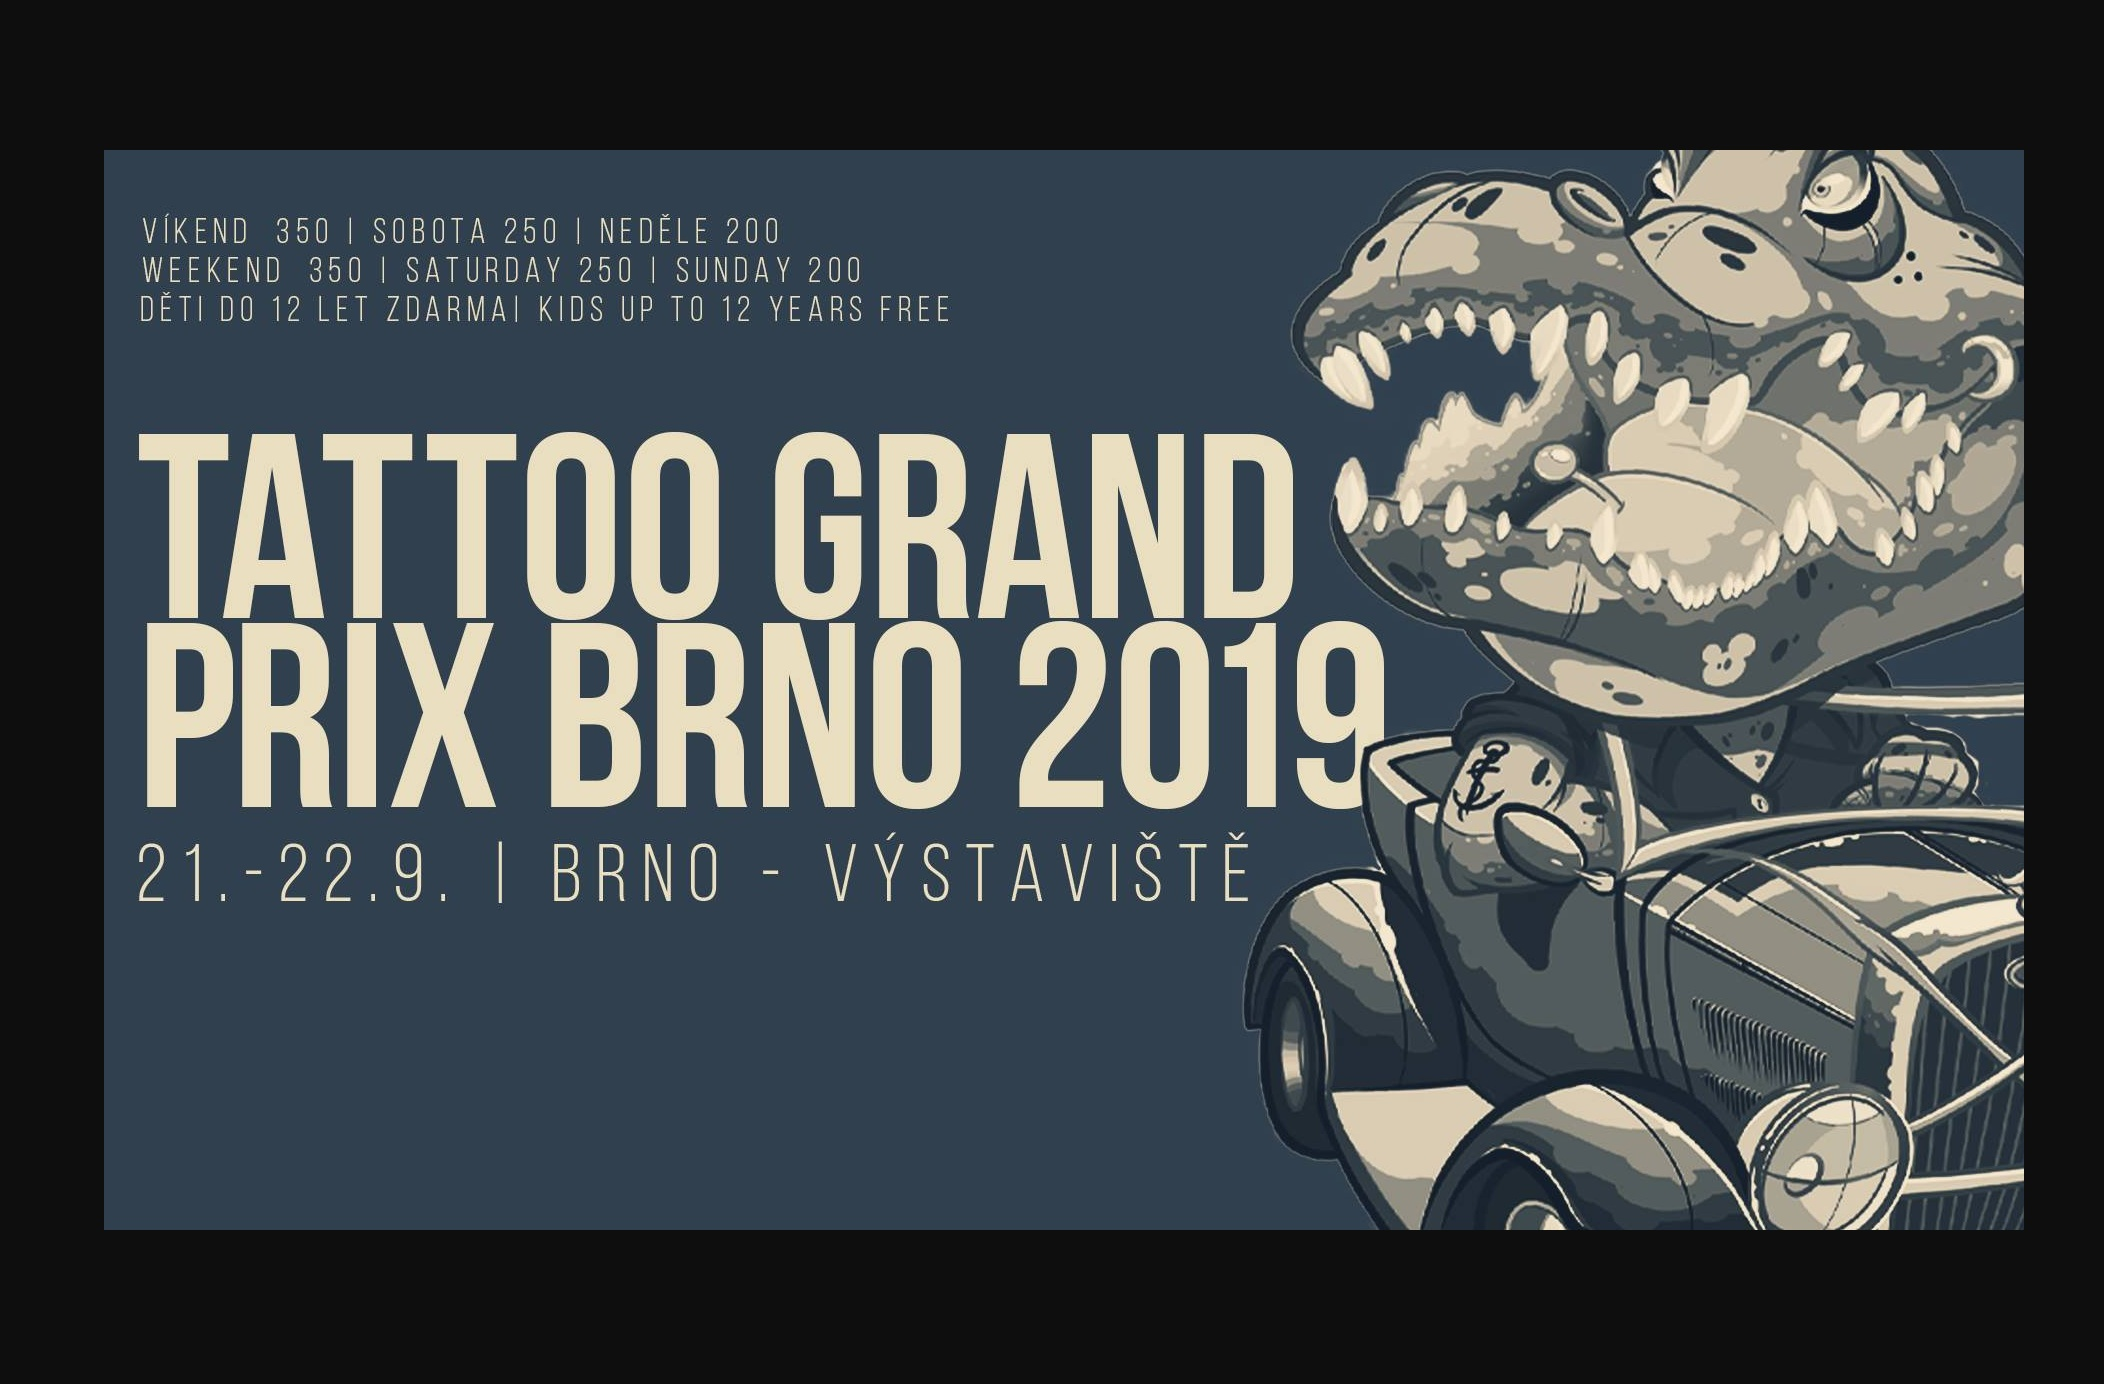 TATTOO GRAND PRIX BRNO